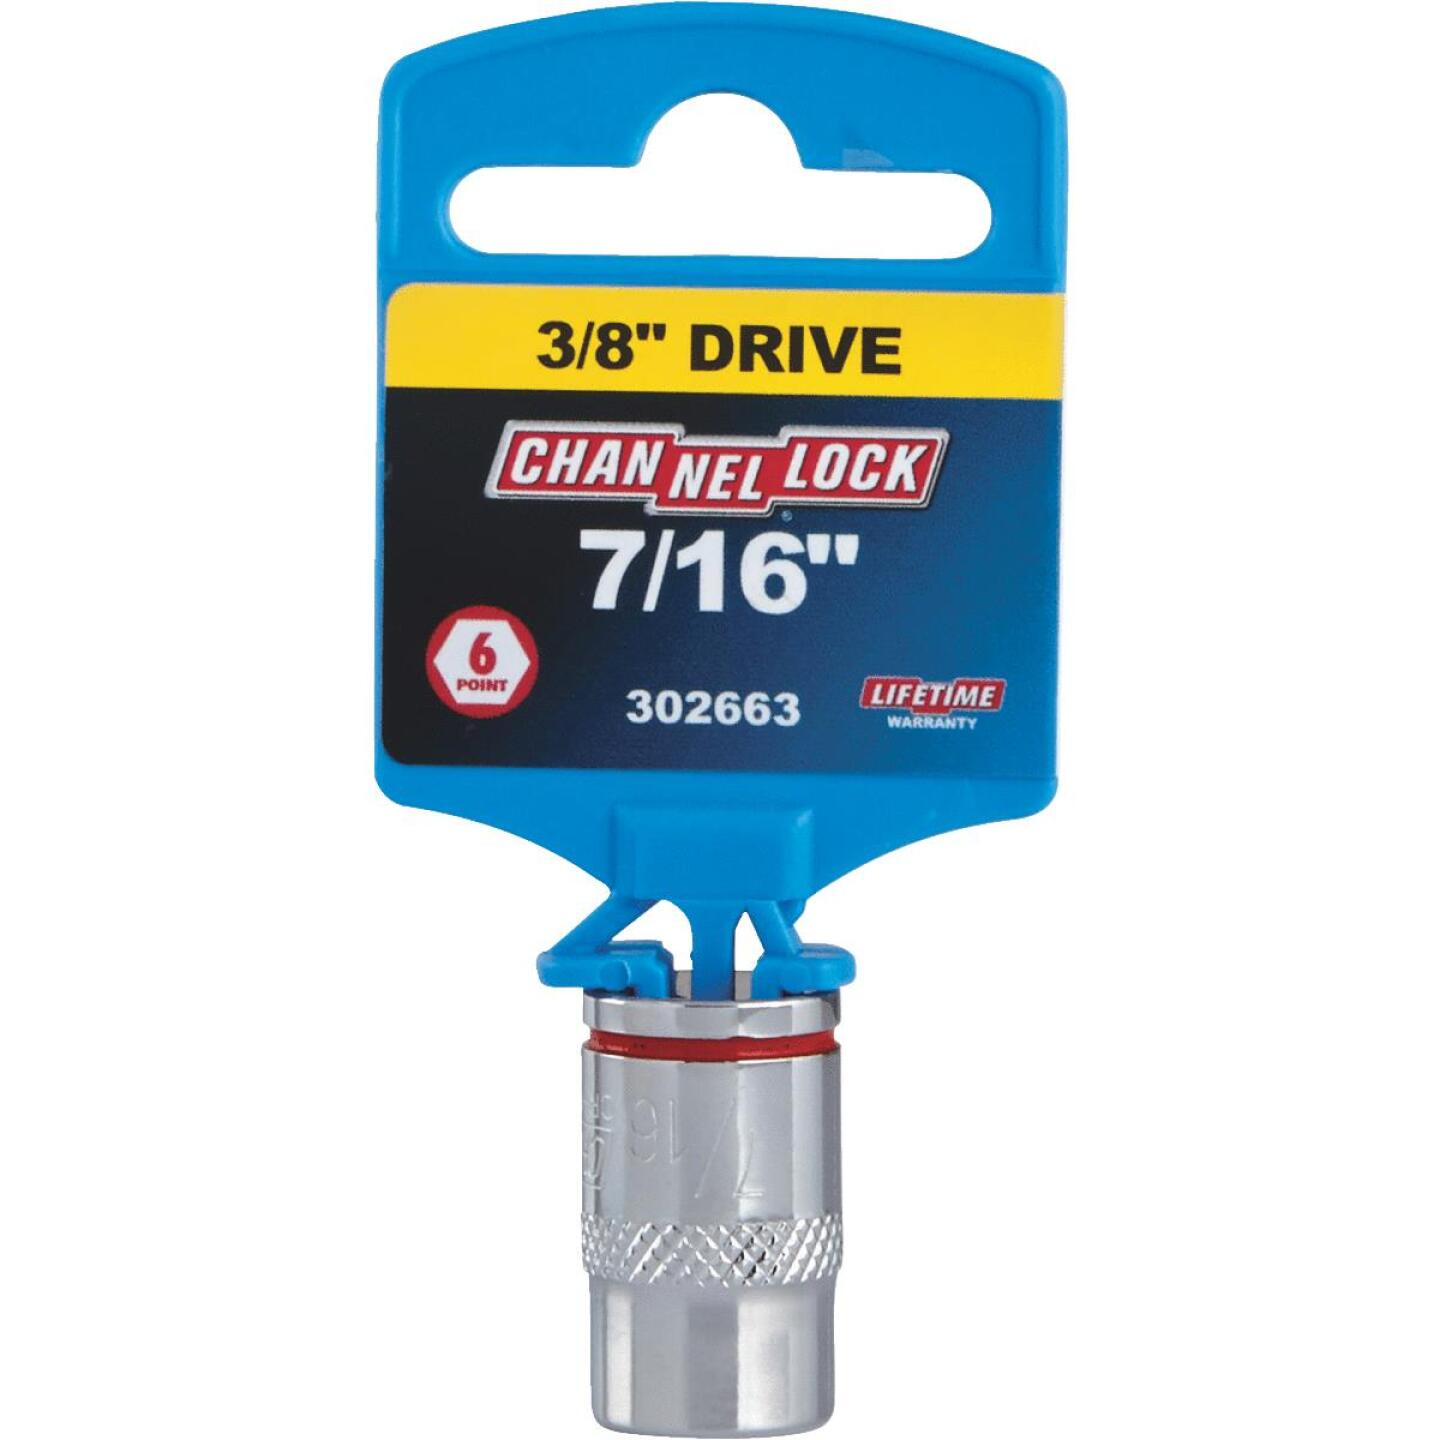 Channellock 3/8 In. Drive 7/16 In. 6-Point Shallow Standard Socket Image 2